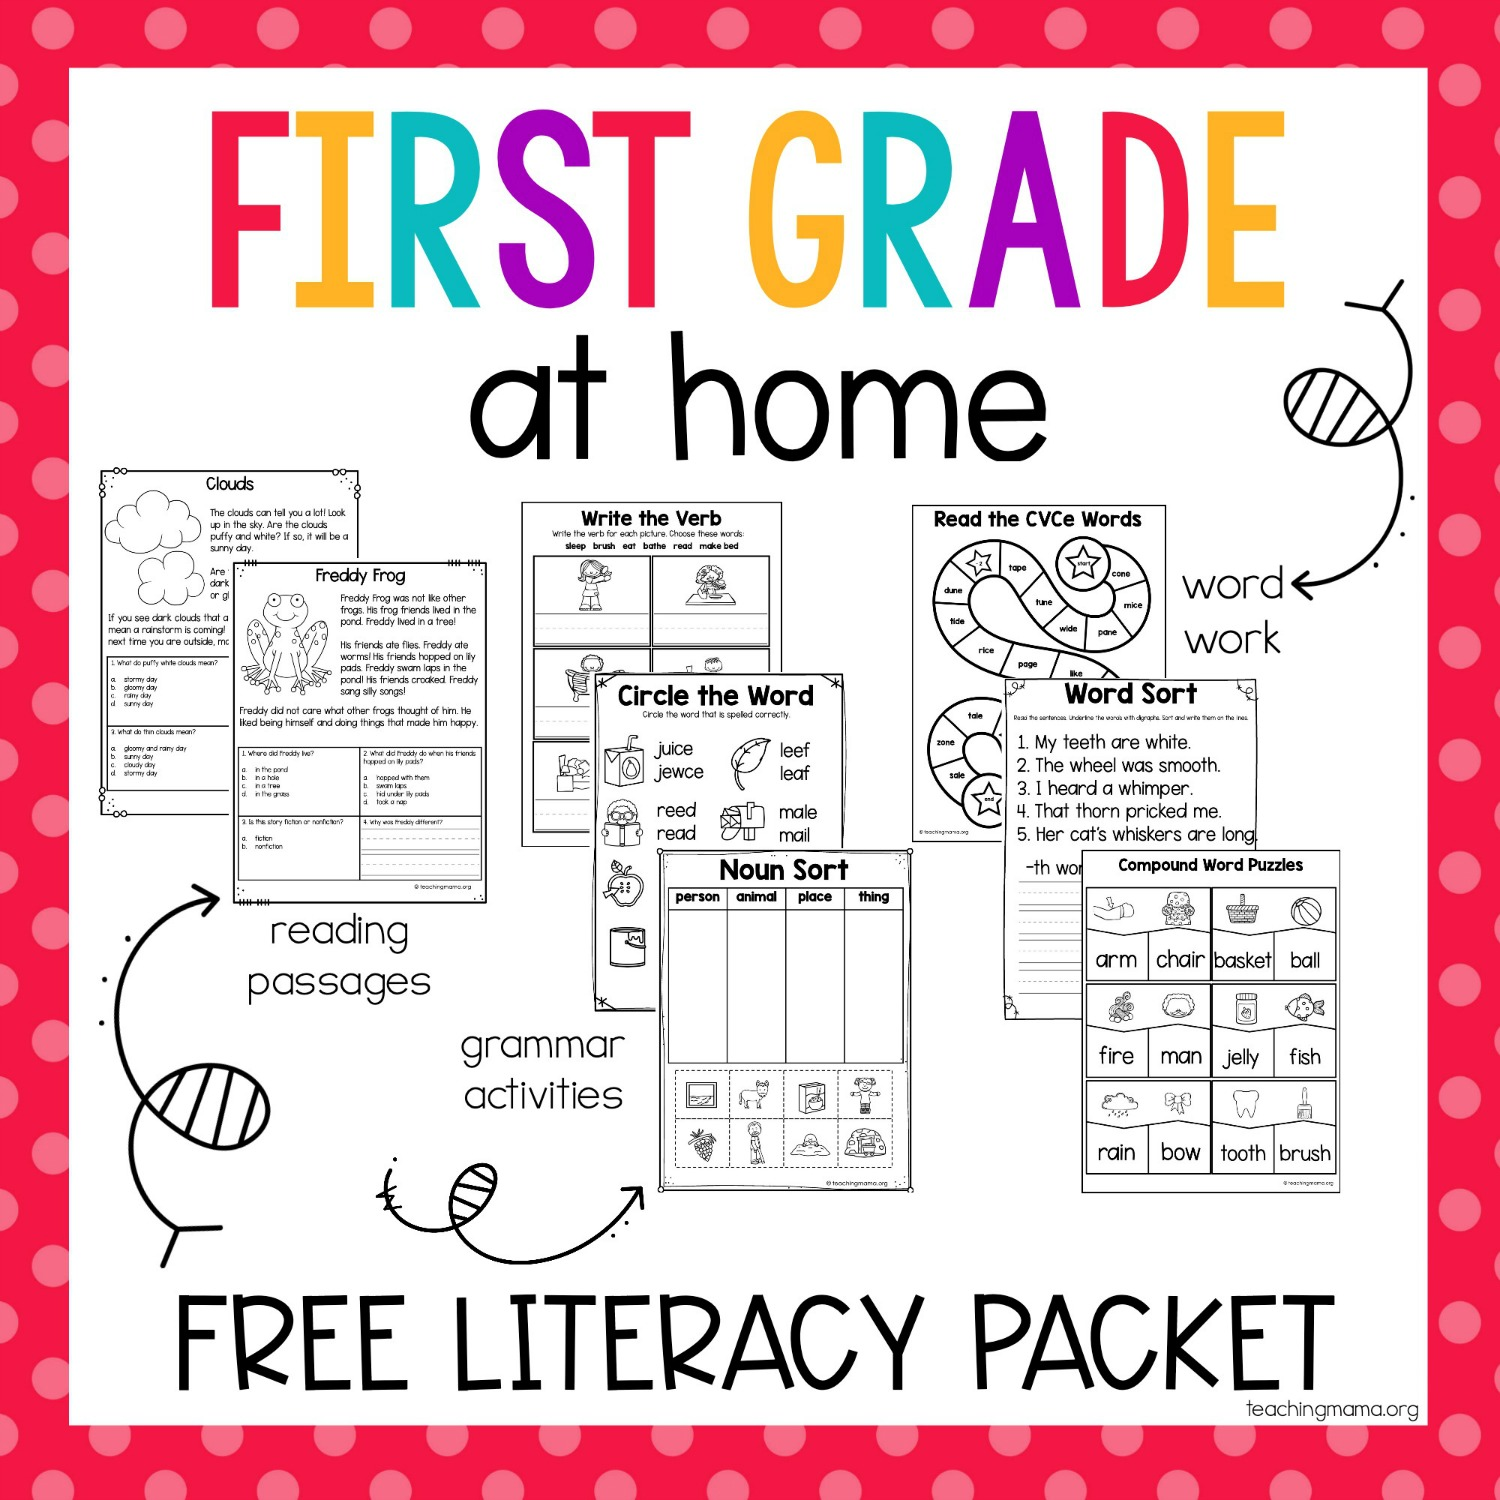 First Grade At Home Literacy Packet